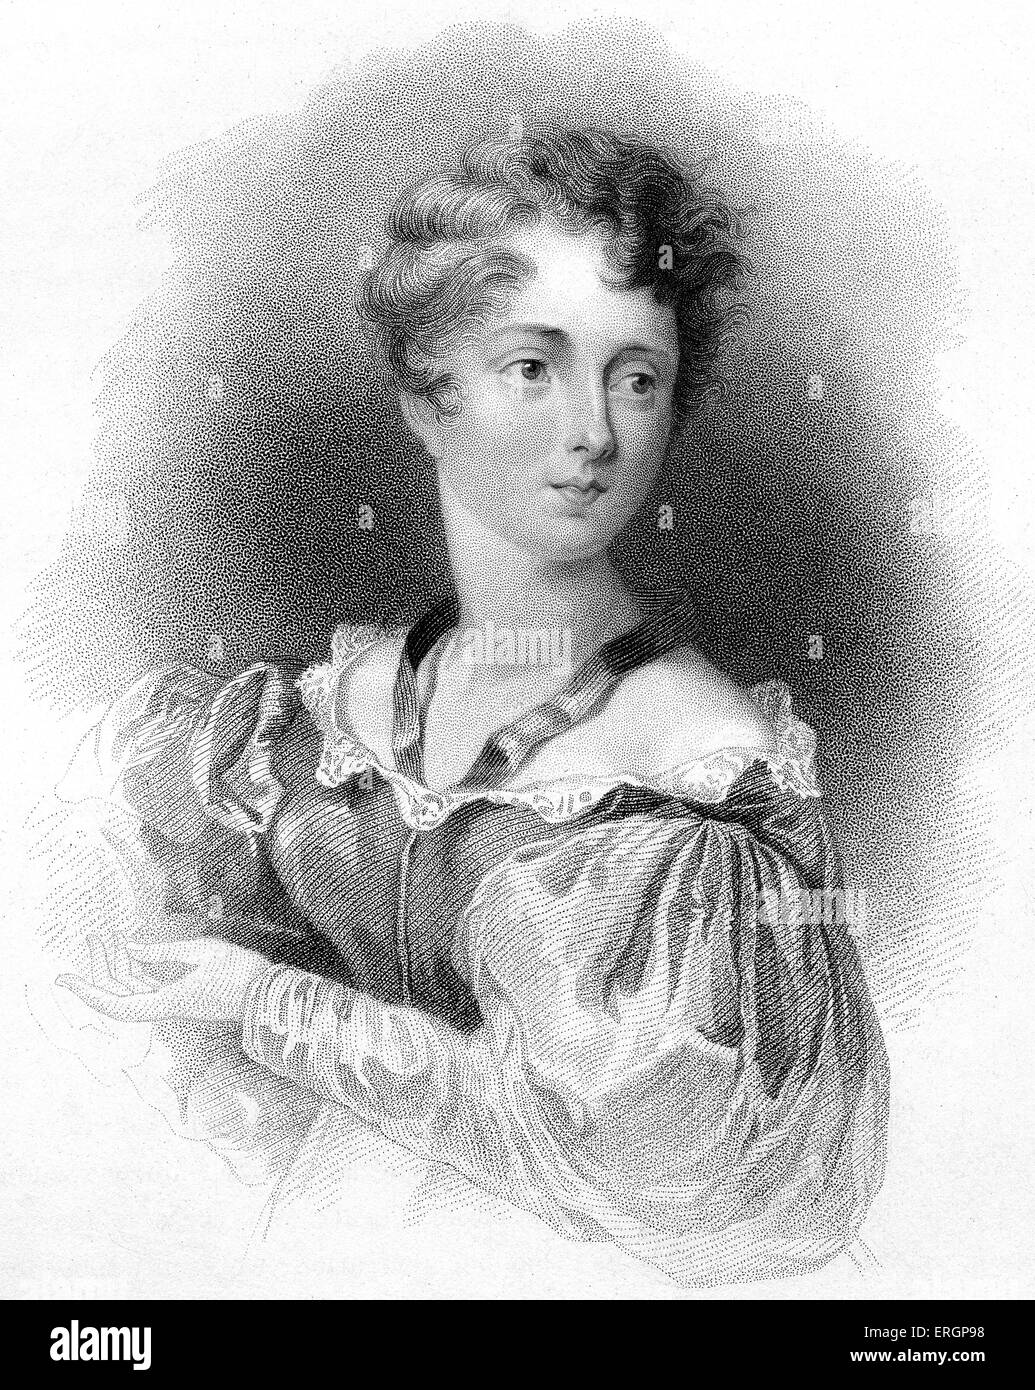 Lady Caroline Lamb. British aristocrat and novelist, who had an affair with Lord Byron in 1812. Engraving by William - Stock Image